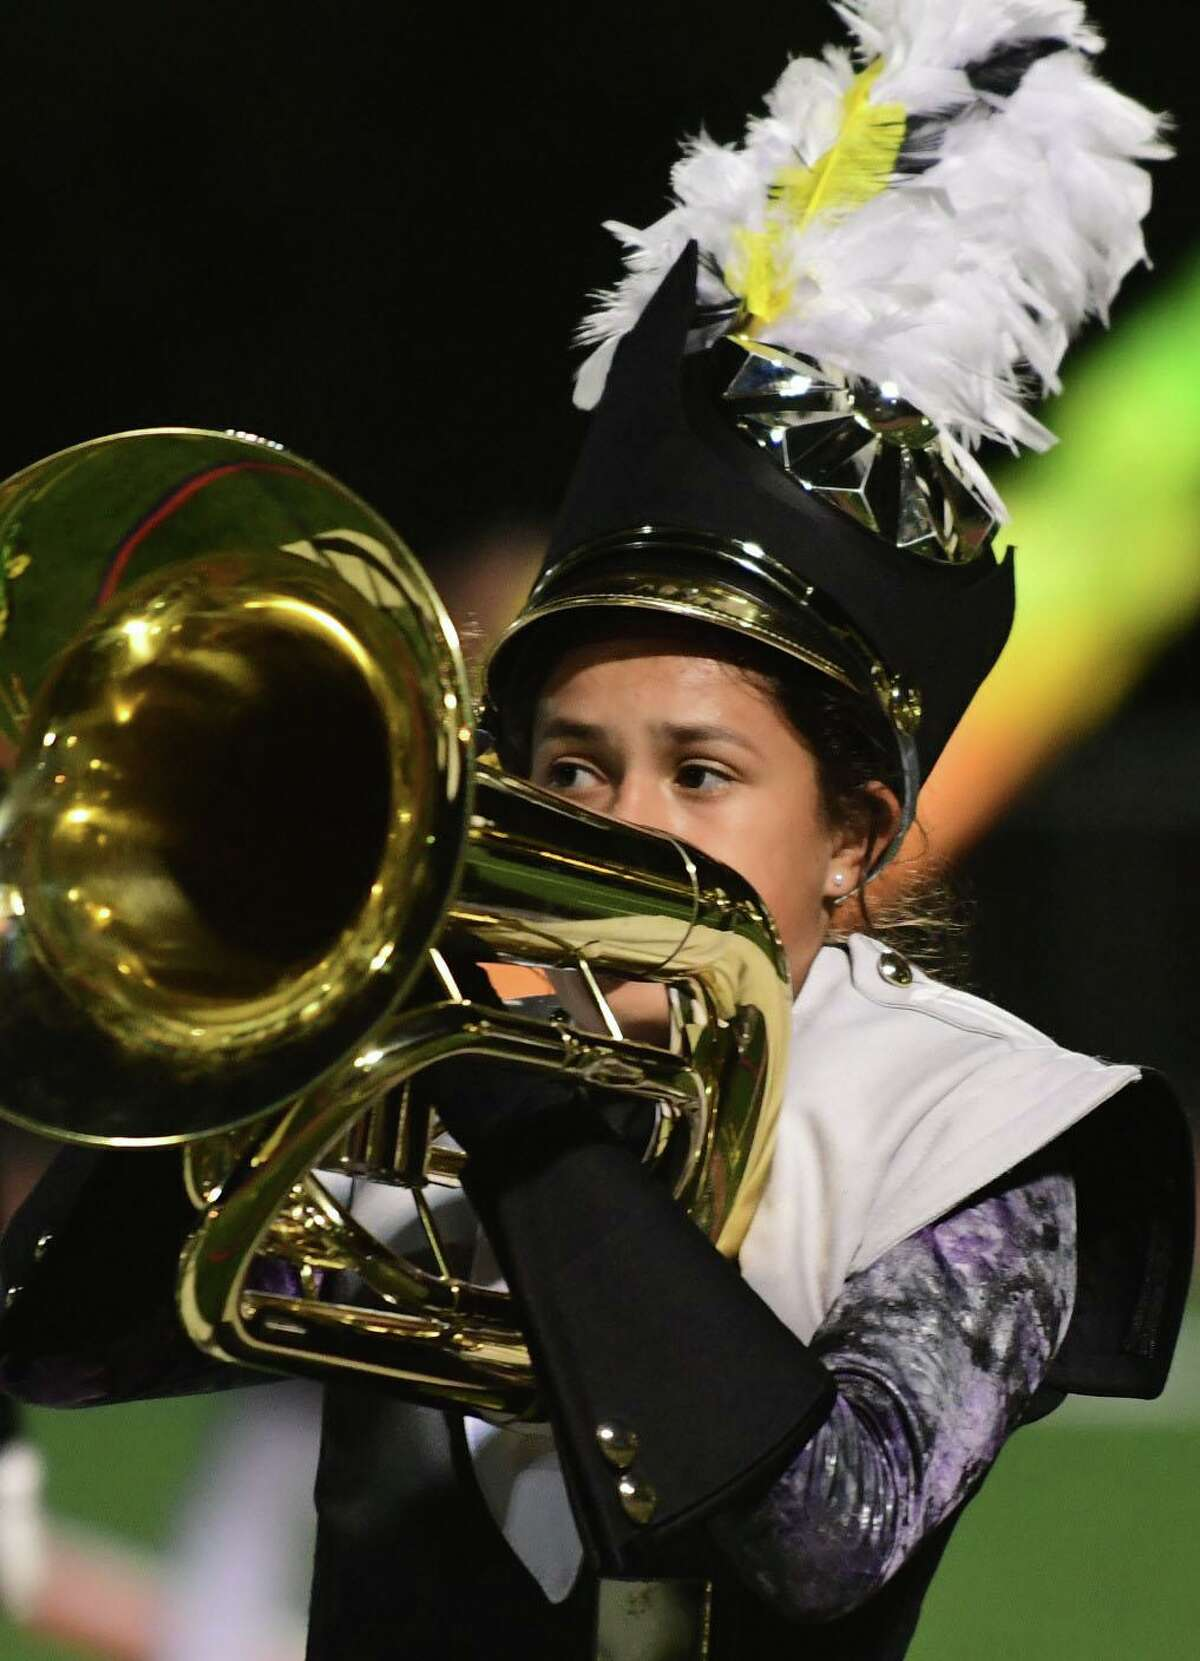 Trumbull High School Marching Bands perform their halftime field show as Norwalk High School hosts The Cavalcade of Bands Saturday, October 12, at the school in Norwalk